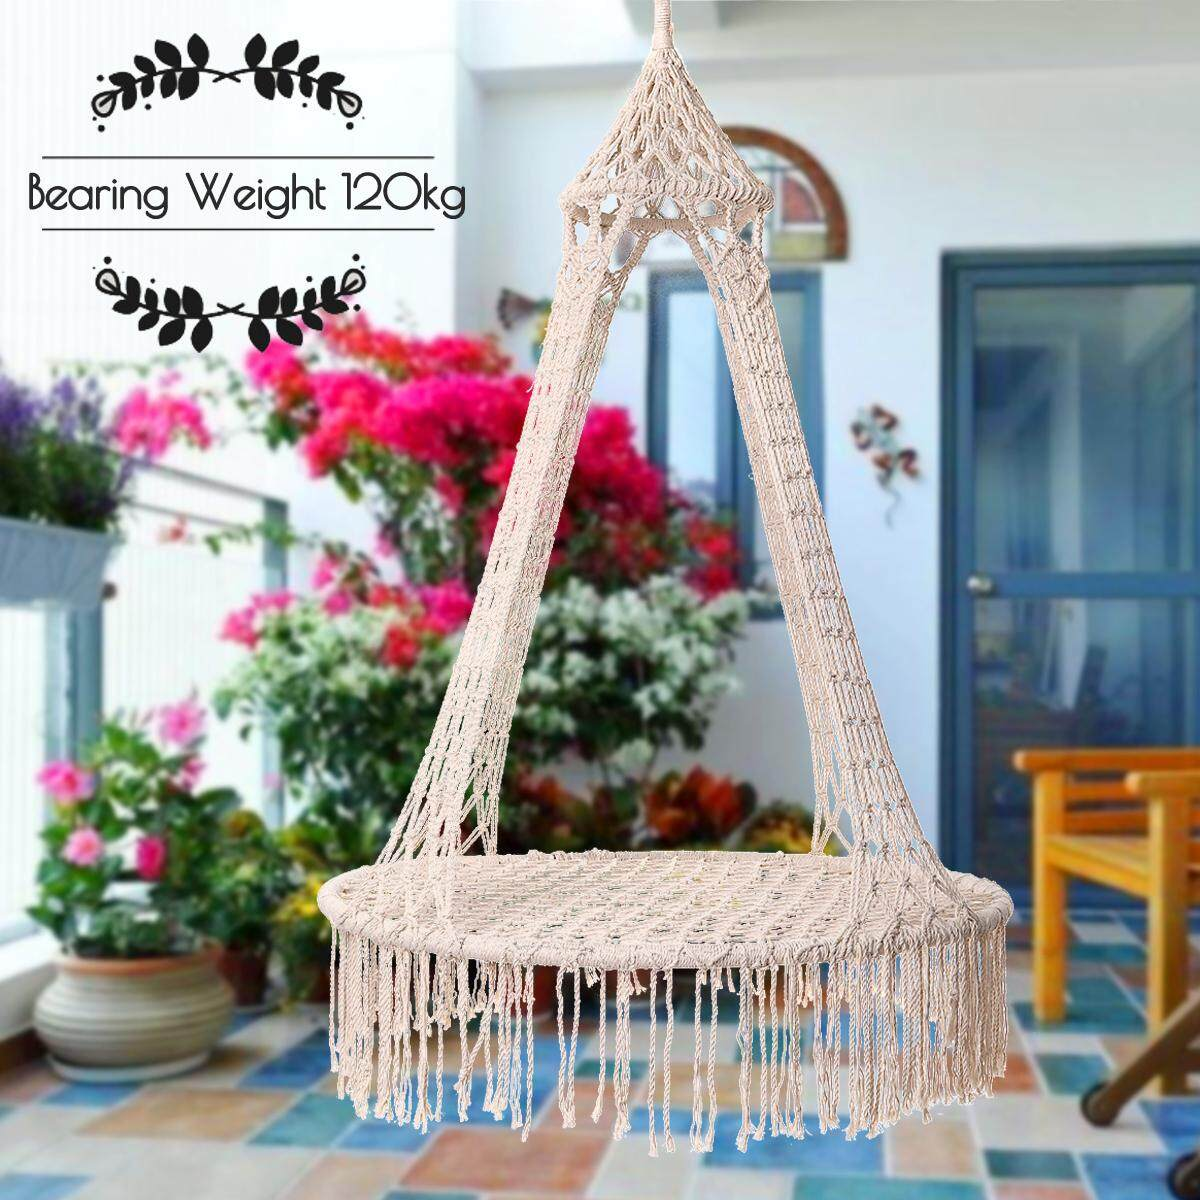 【Free Shipping + Flash Deal】Gardeon Lounge Hanging Chair Hammock Swing Seat Indoor Outdoor Camping Tassel